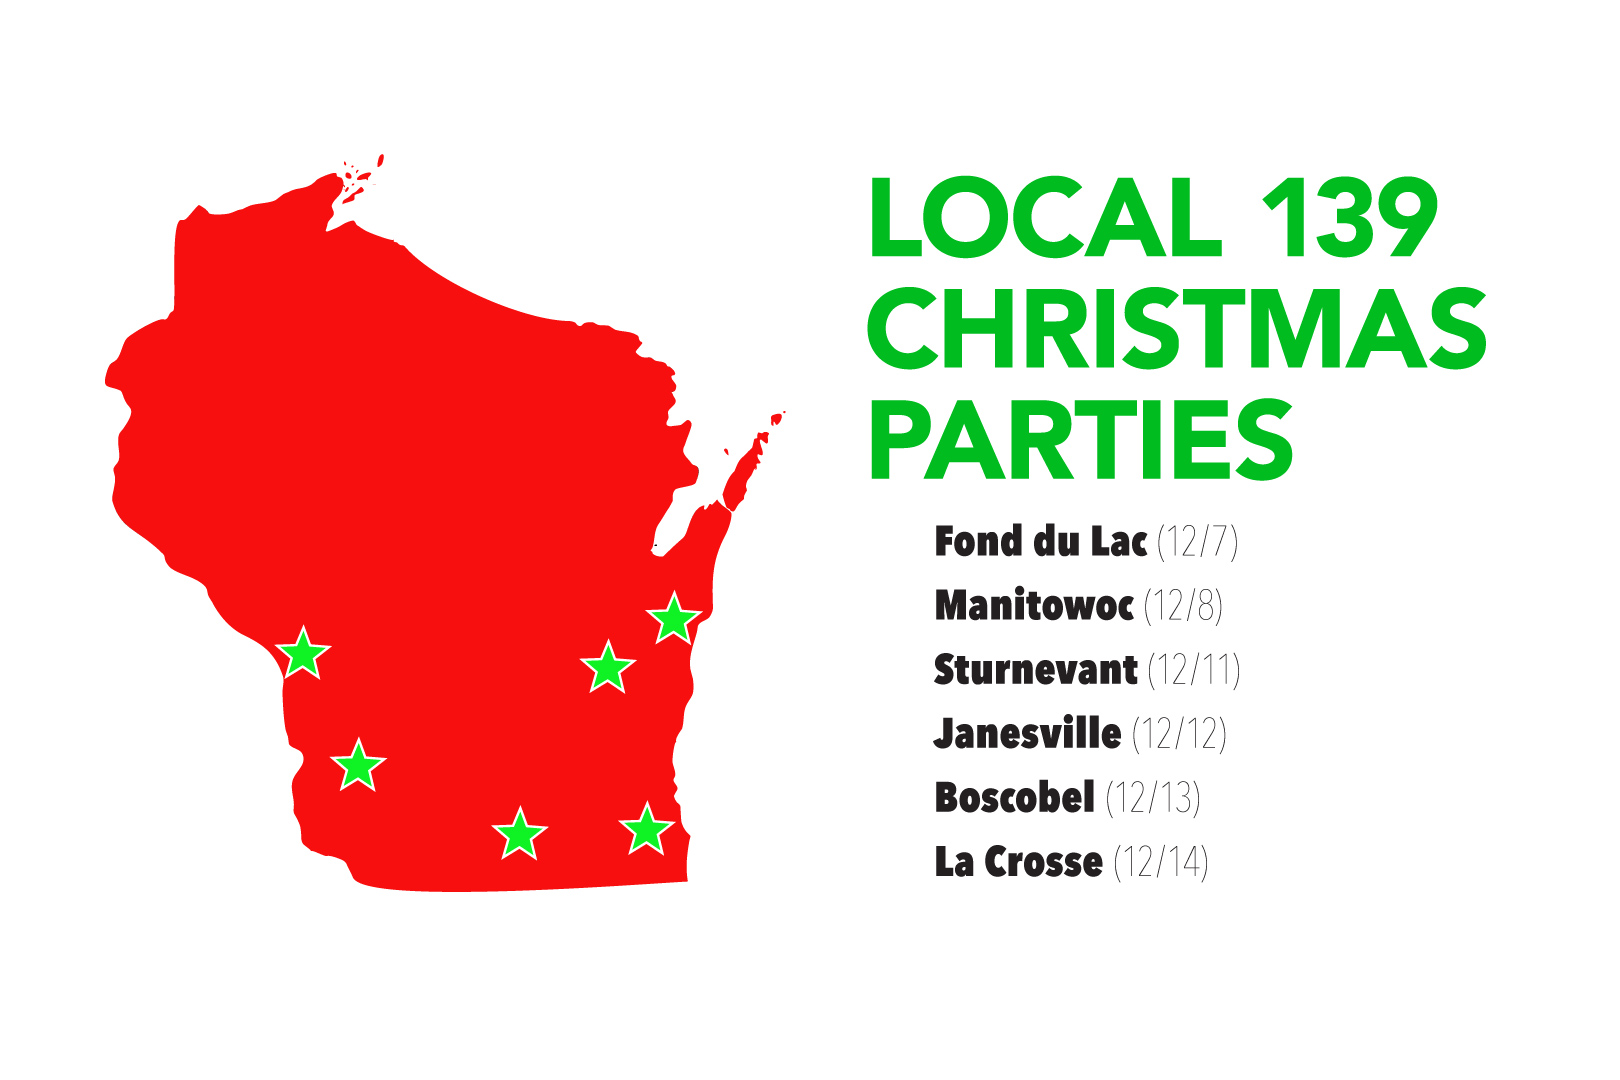 Join us at the upcoming 139 Christmas meetings. Check the online calendar to find the meetings in your area. Tonight: The Fond du Lac meeting!